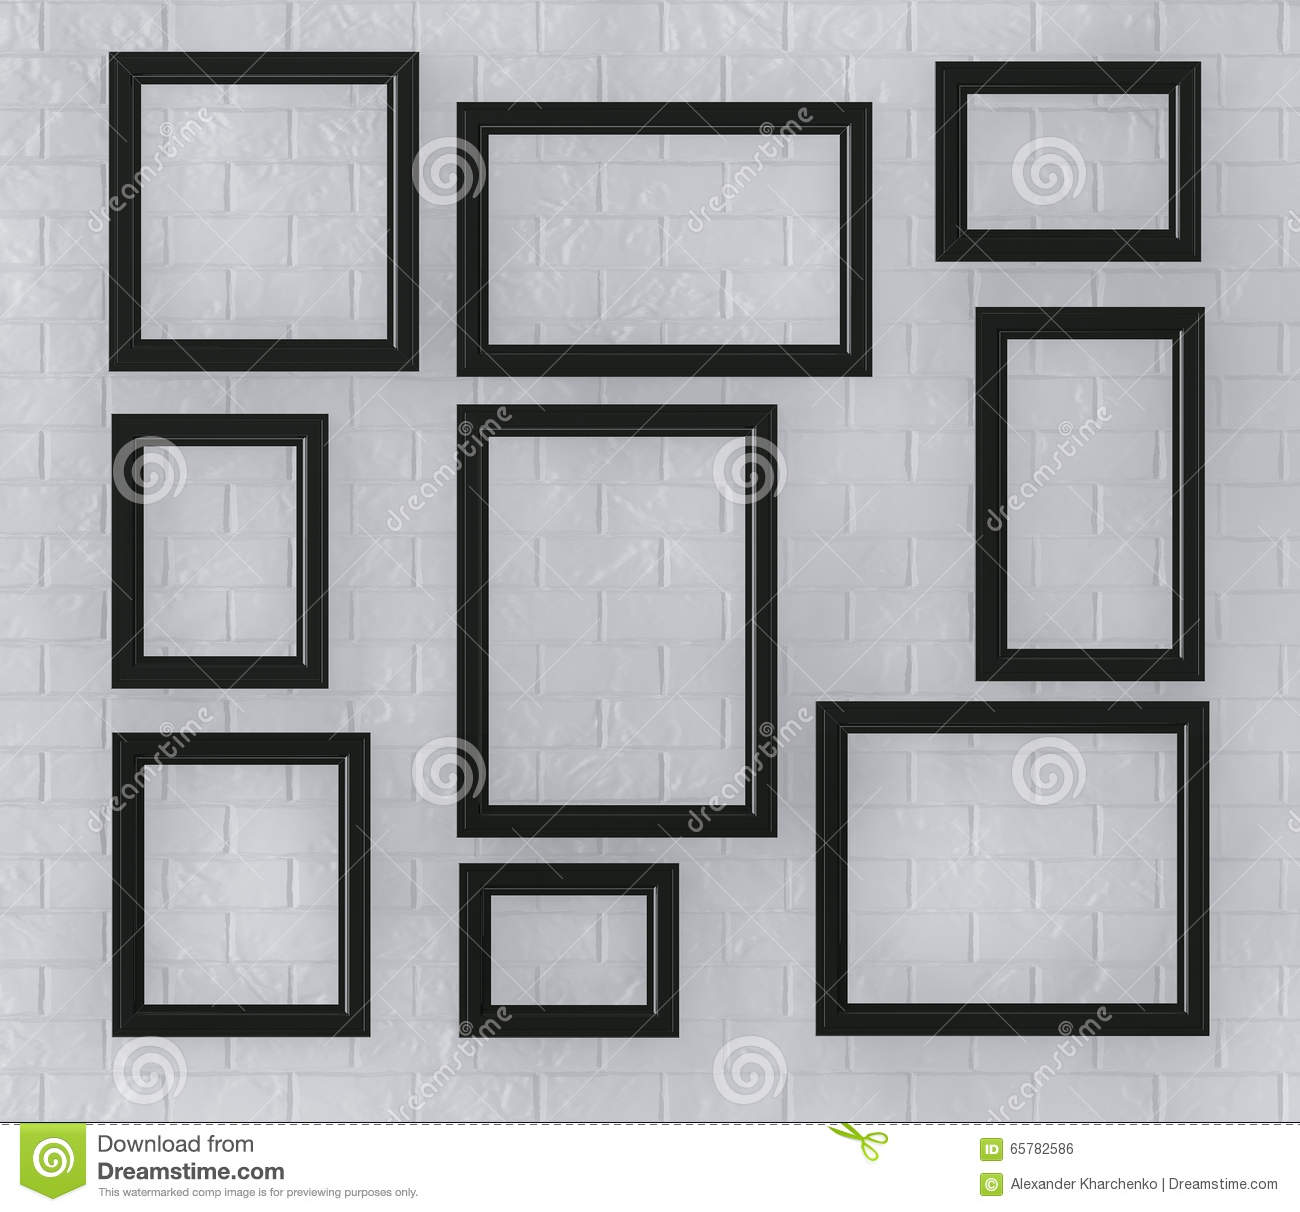 Black Picture Frames on a Brick Wall